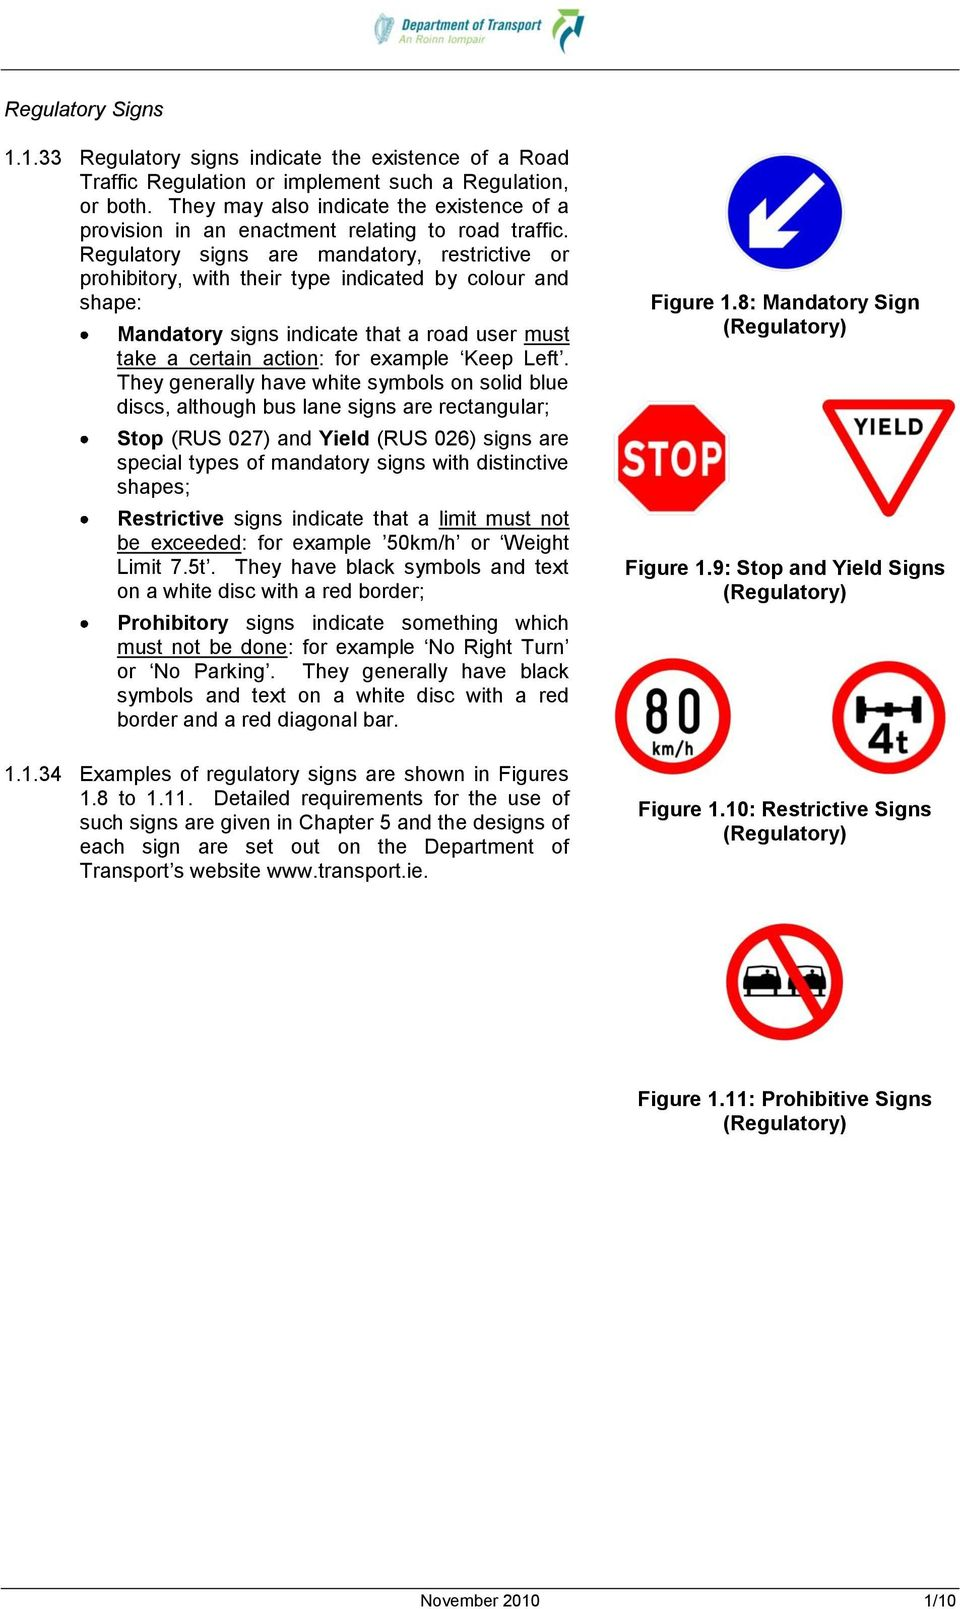 Regulatory signs are mandatory, restrictive or prohibitory, with their type indicated by colour and shape: Mandatory signs indicate that a road user must take a certain action: for example Keep Left.